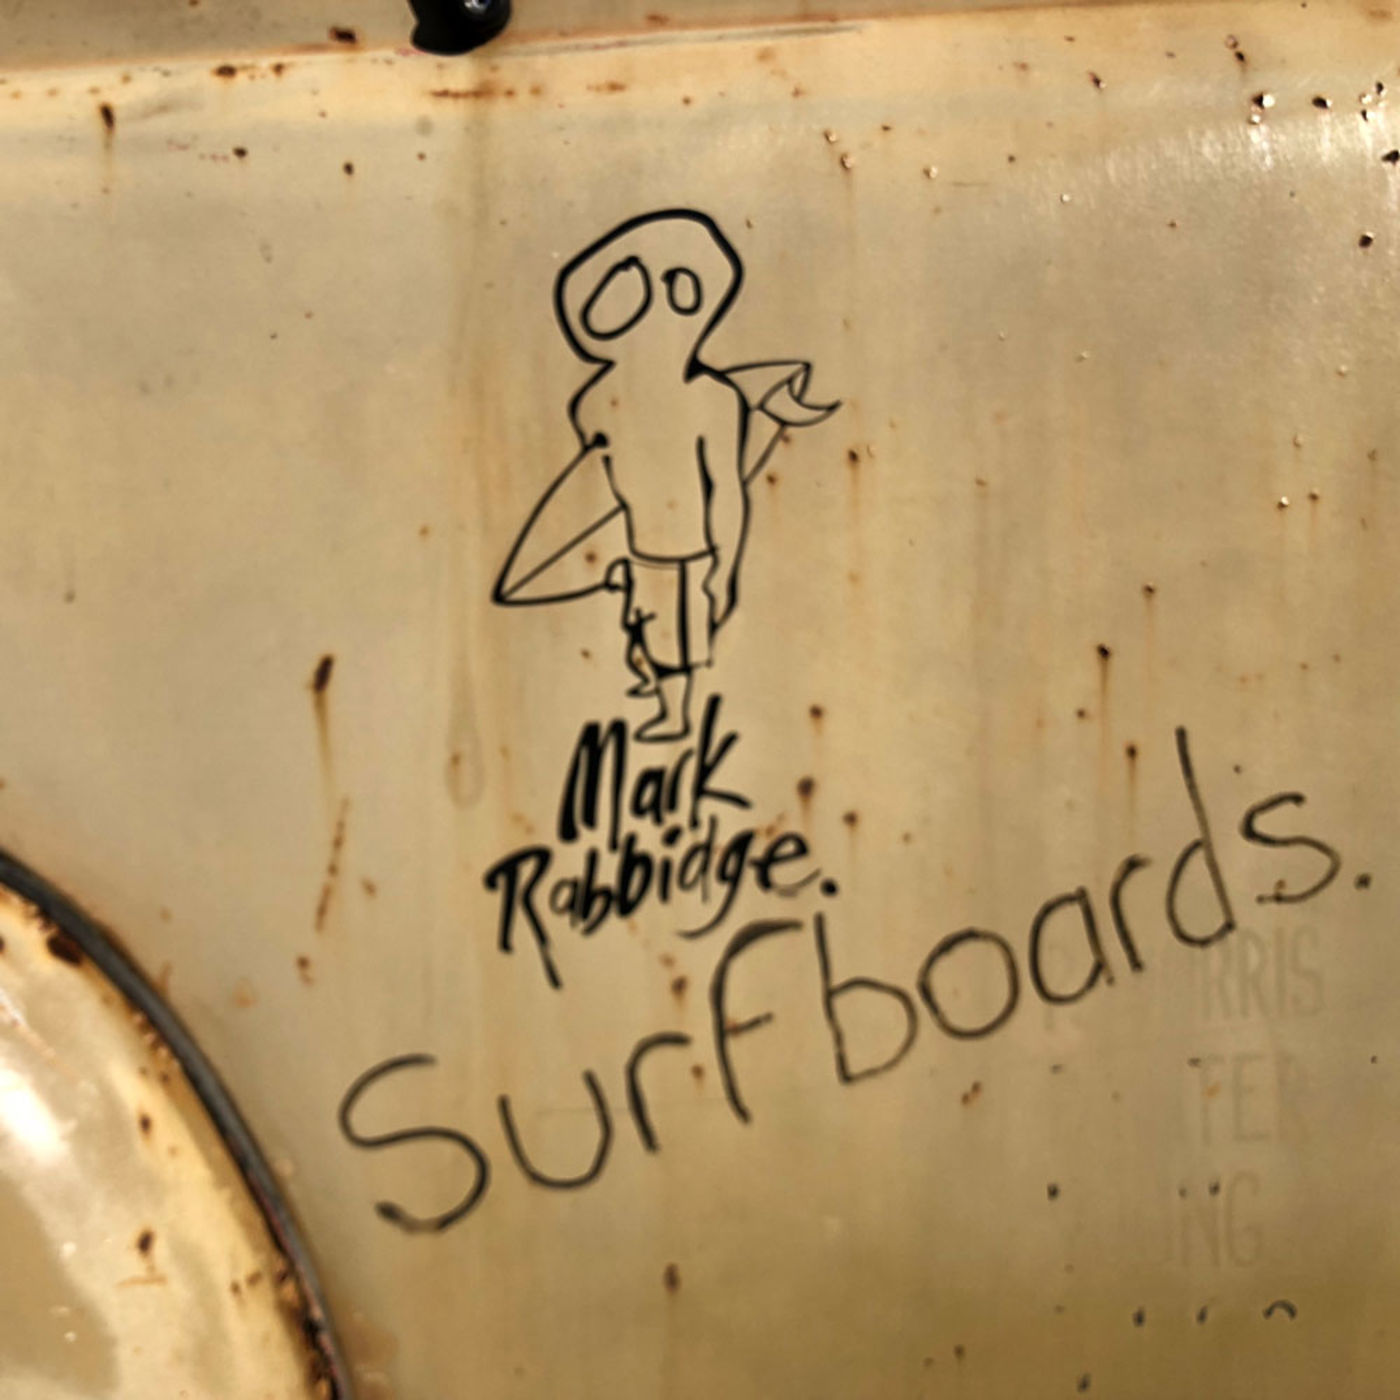 Neal Cameron and Mark Rabbidge - Hipsters, hard-edge rail hangups and the stagnation of modern-day surfboard design